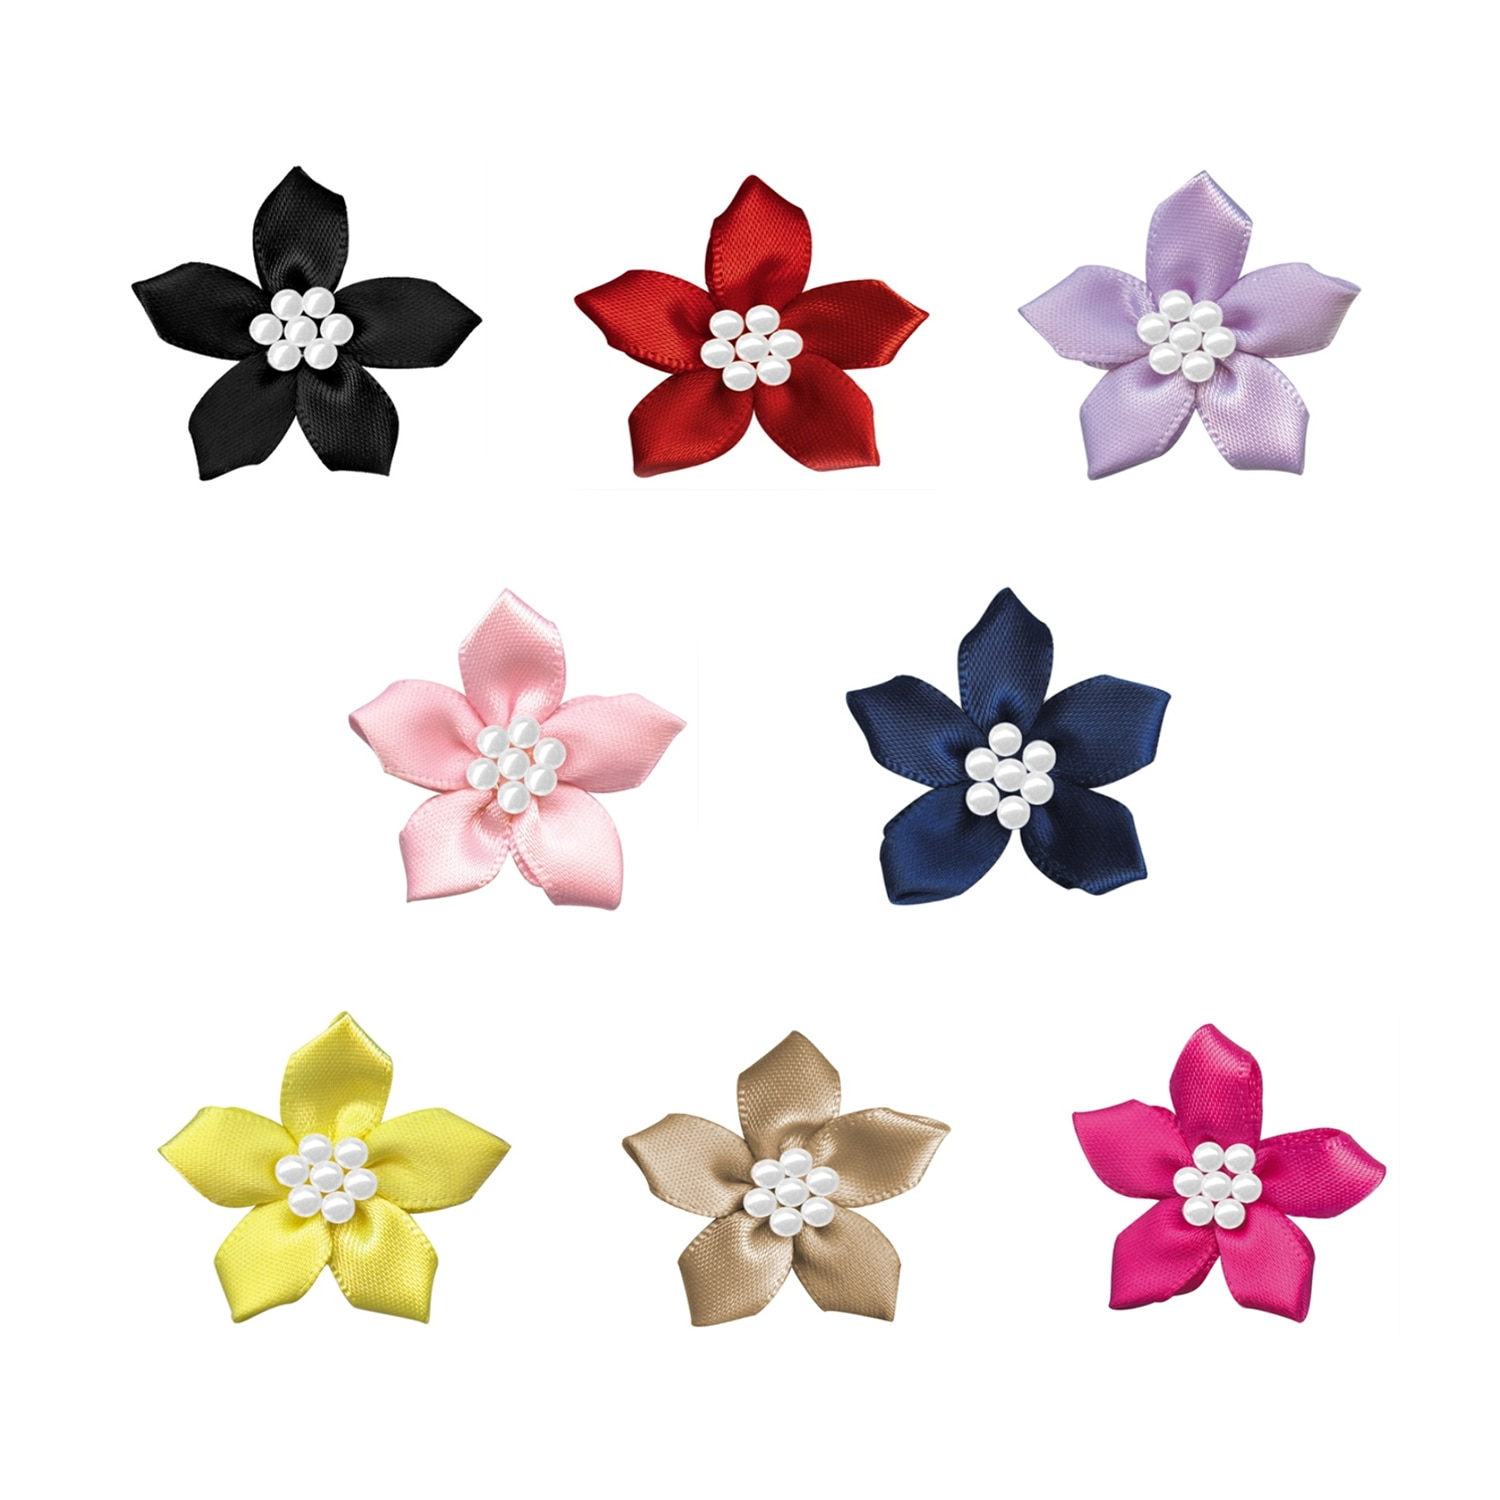 Mix Satin Ribbon Bow Flower Pearl Bead DIY Fashion Headwear Accessories Handmade Craft Project Sewing Hats Shoes Wedding Flowers